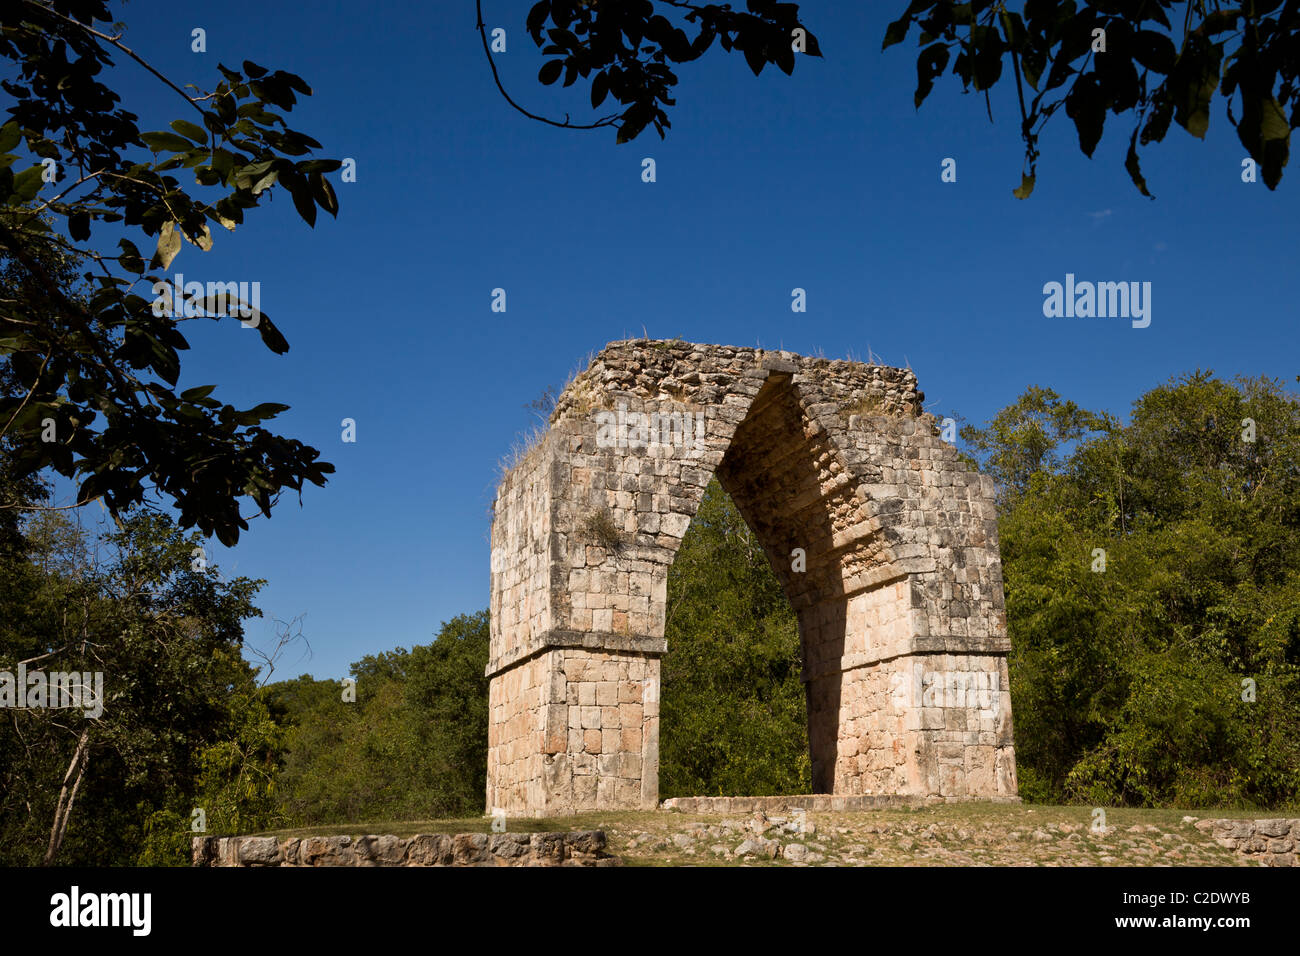 Monumental arch at the Puuc style Maya ruins of Kabah along the Puuc Route in the Yucatan Peninsula, Mexico. Stock Photo